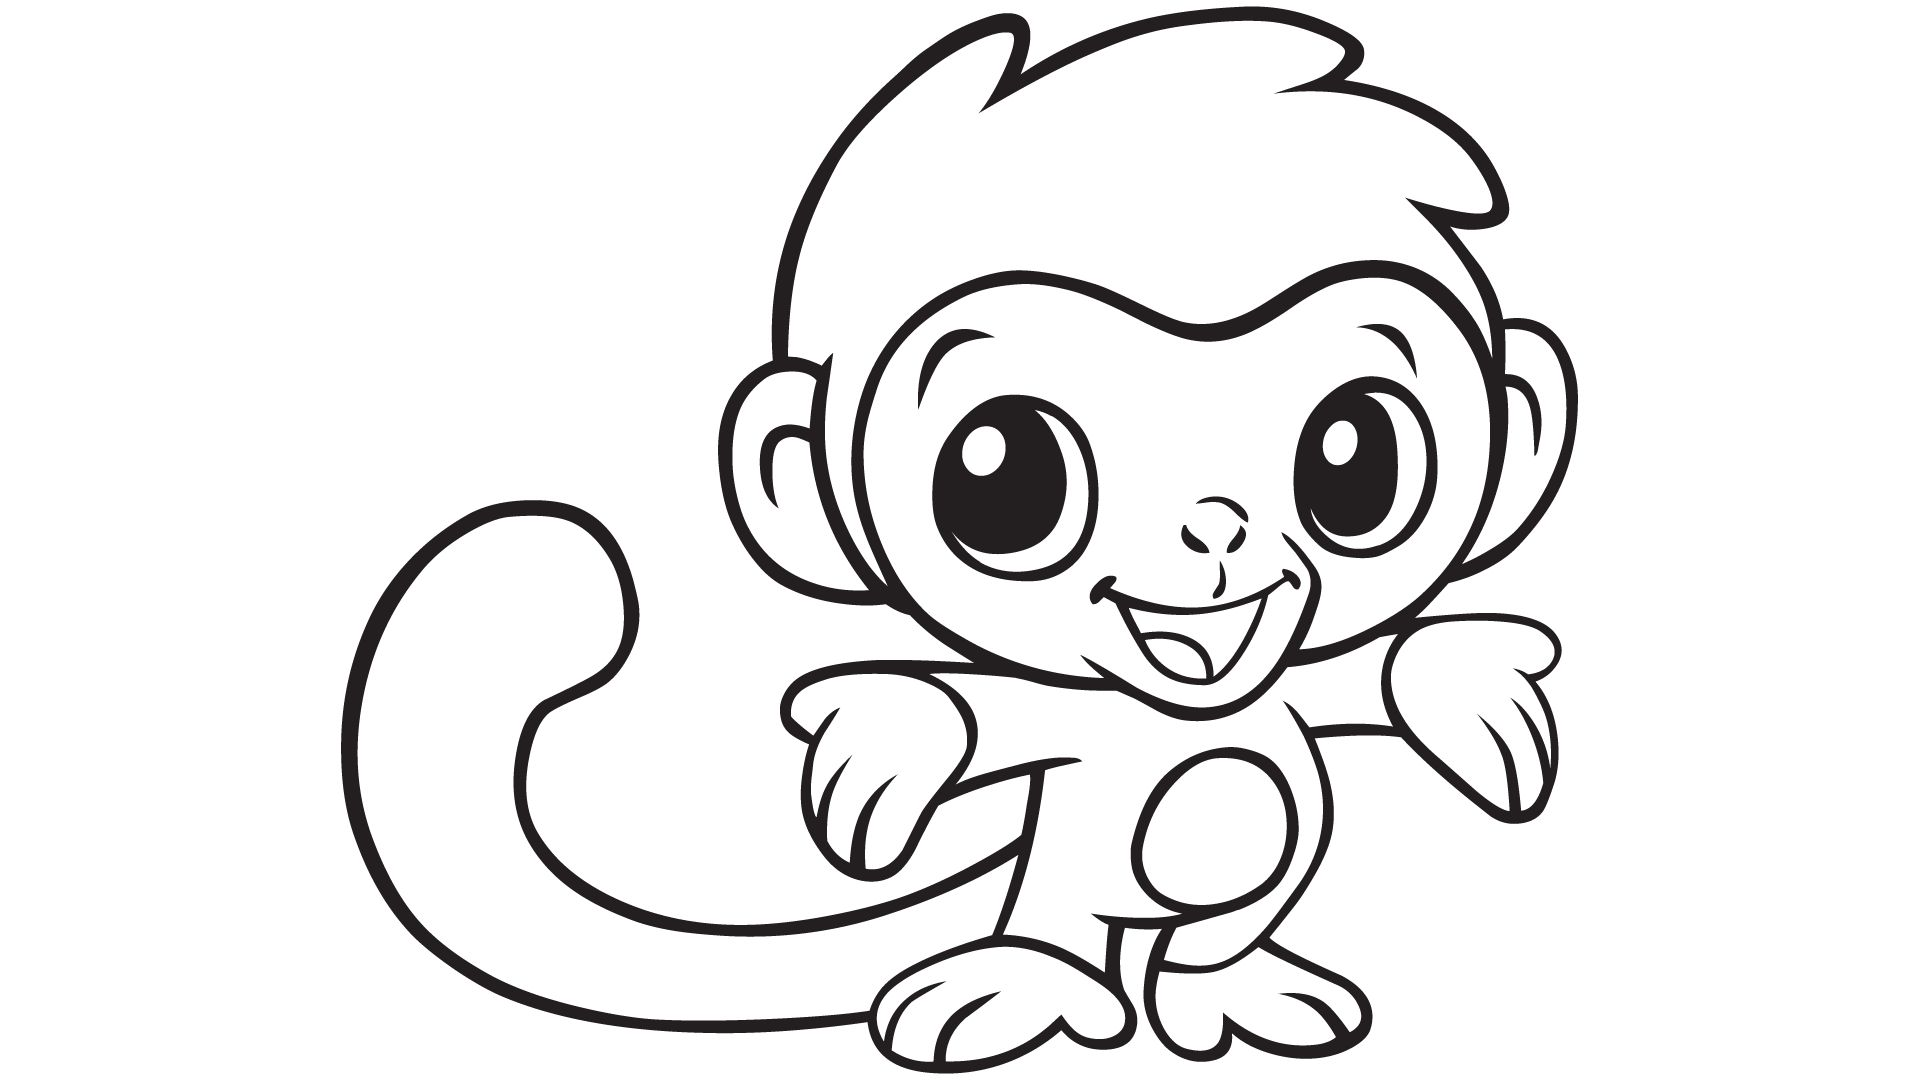 1920x1080 Value Monkey Coloring Pages Heavenly Of A Colo